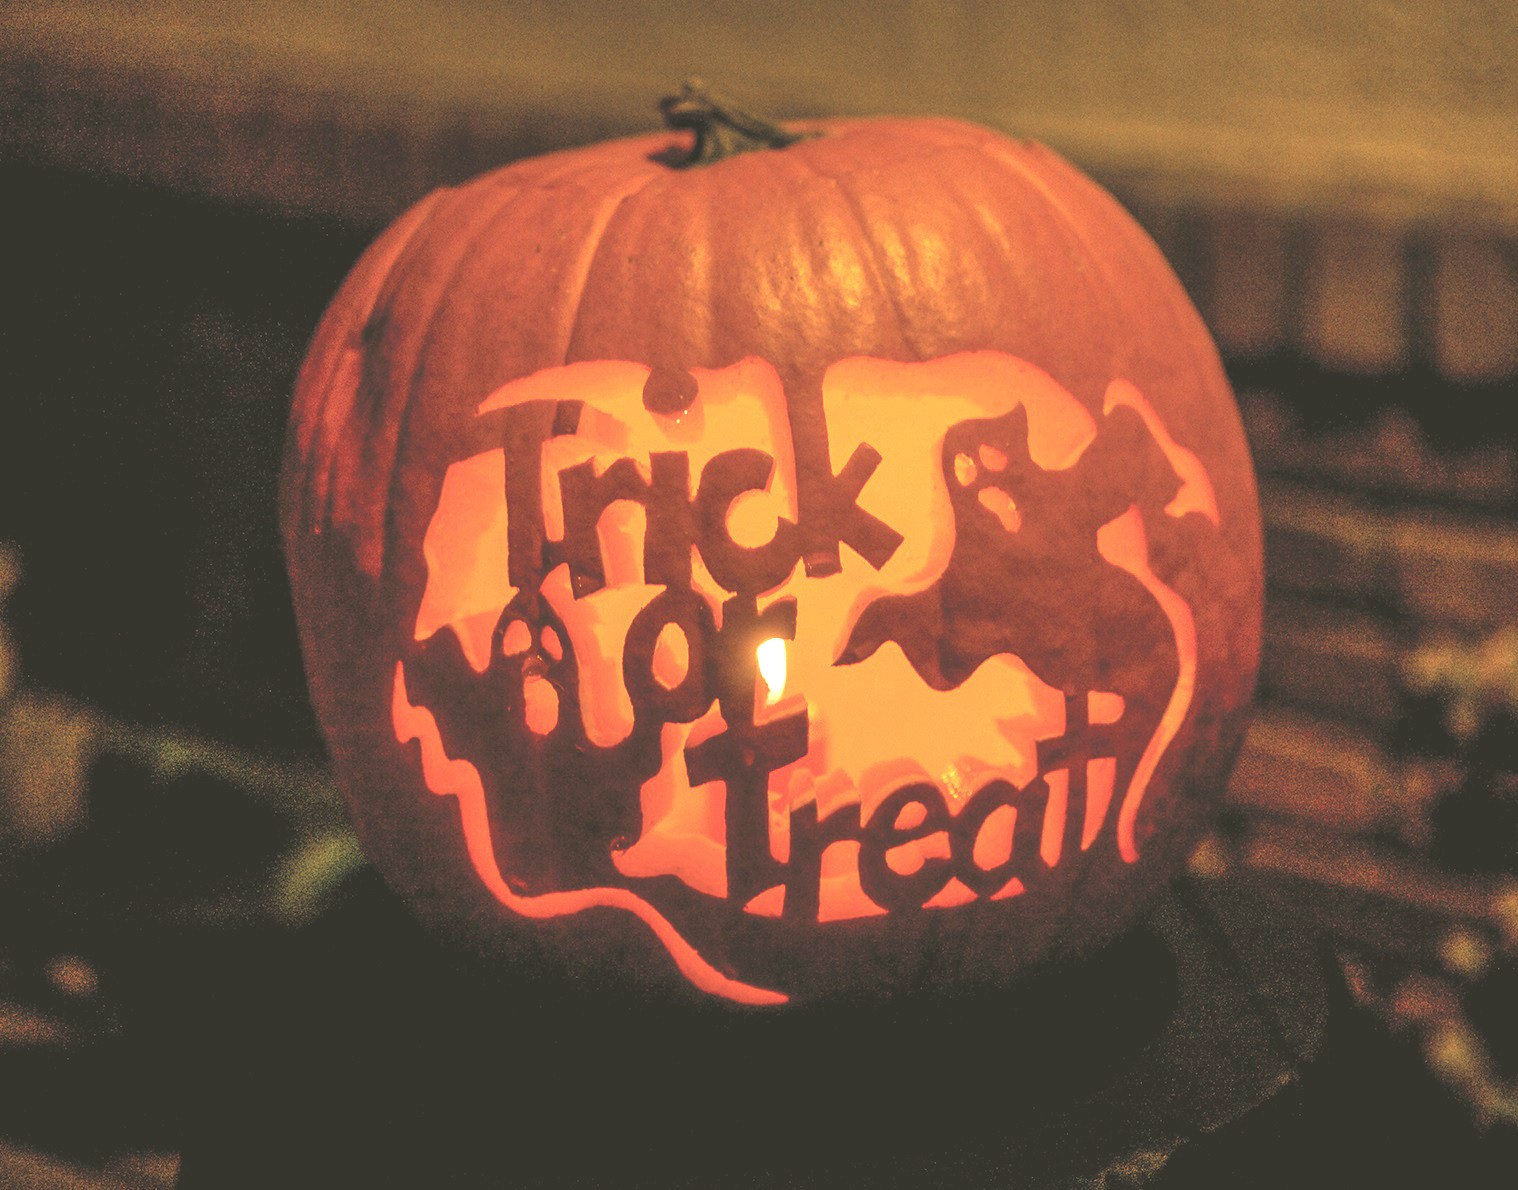 Many area communities have set trick-or-treat times. The Toledo-Lucas County Health Department offers Halloween safety tips for 2020.